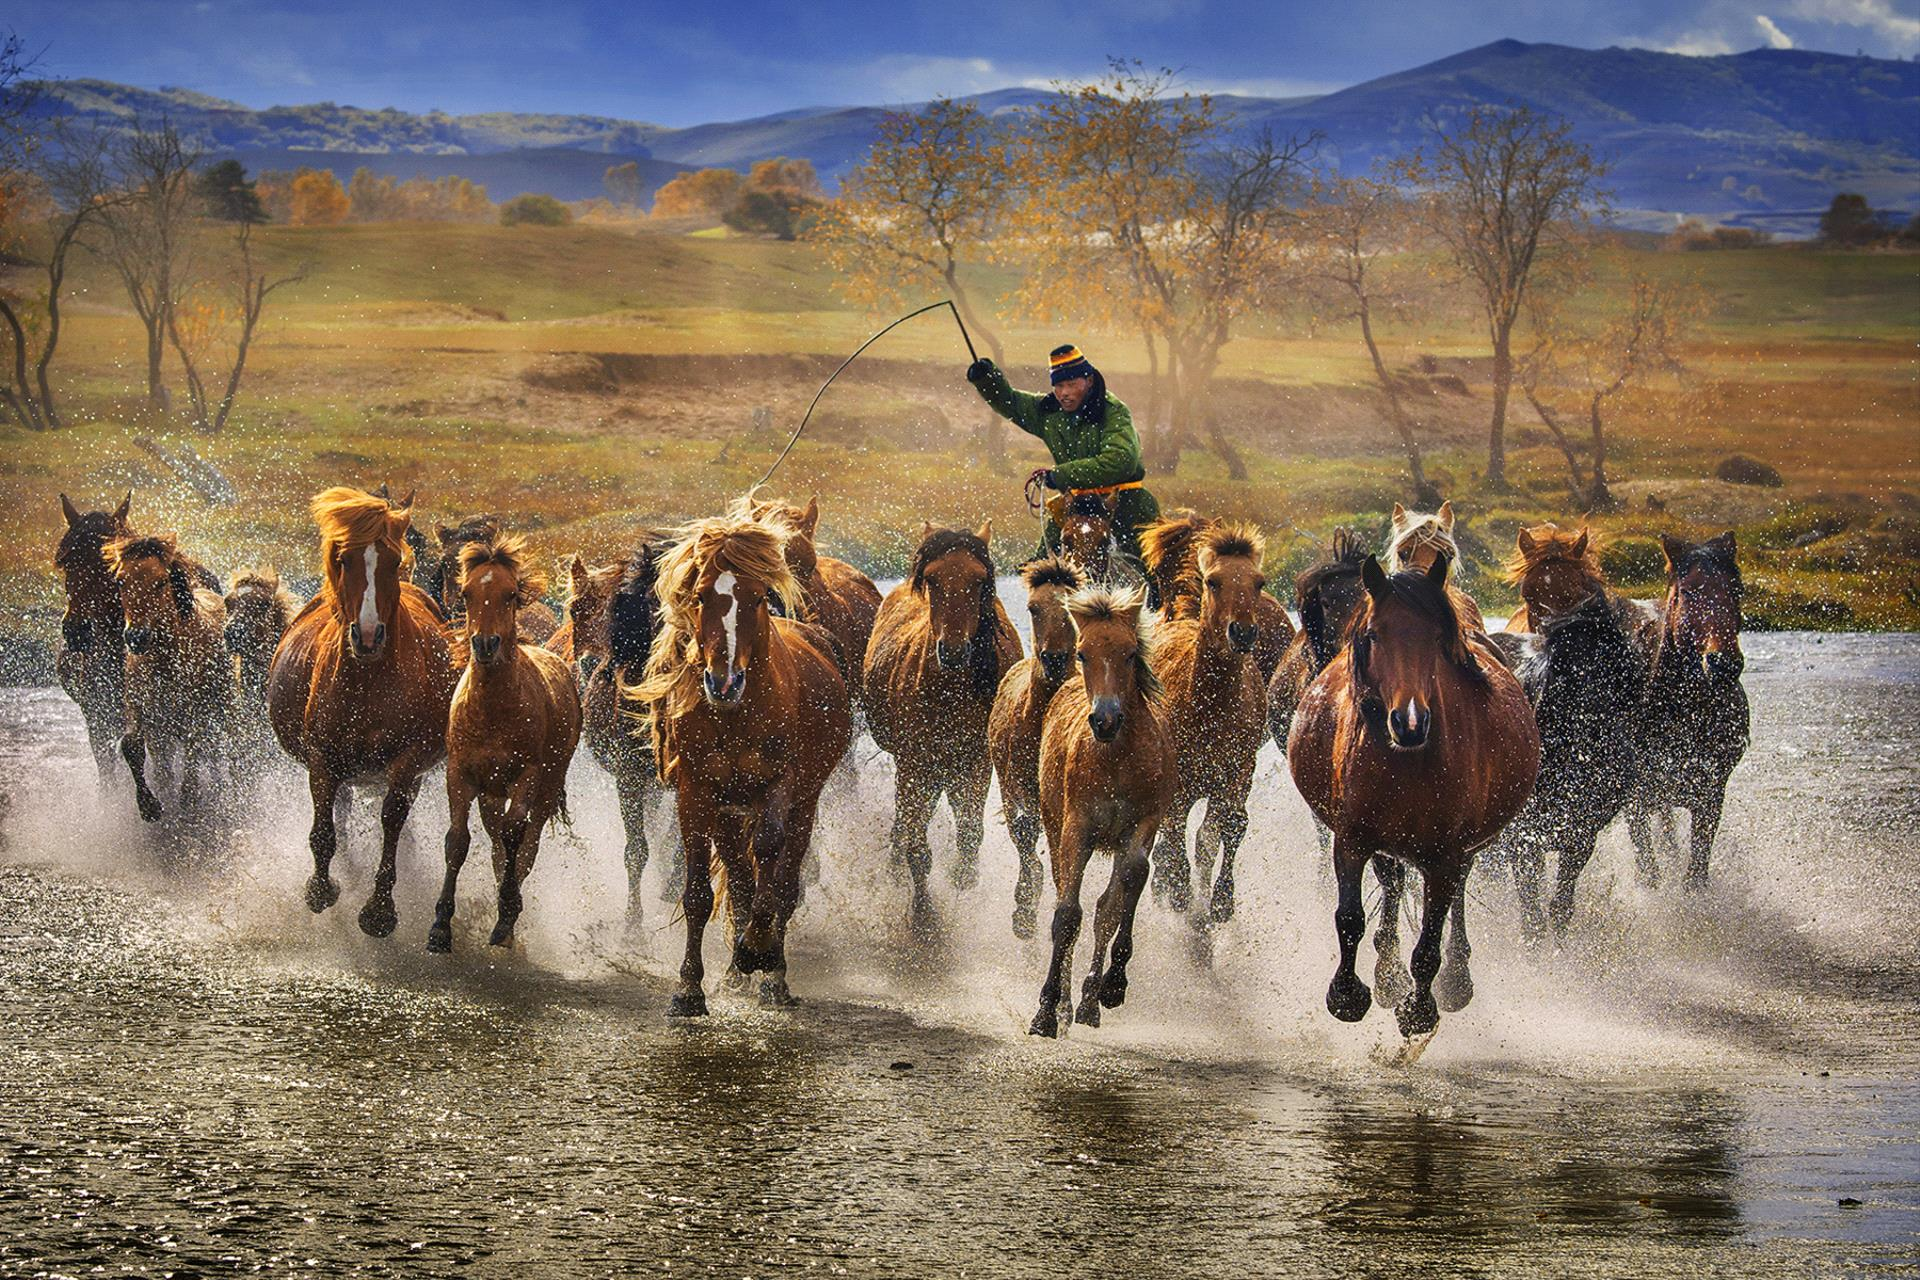 PhotoVivo Honor Mention - Mi Yee Mariana Poon (Hong Kong)  Flipping Horses Crossing River